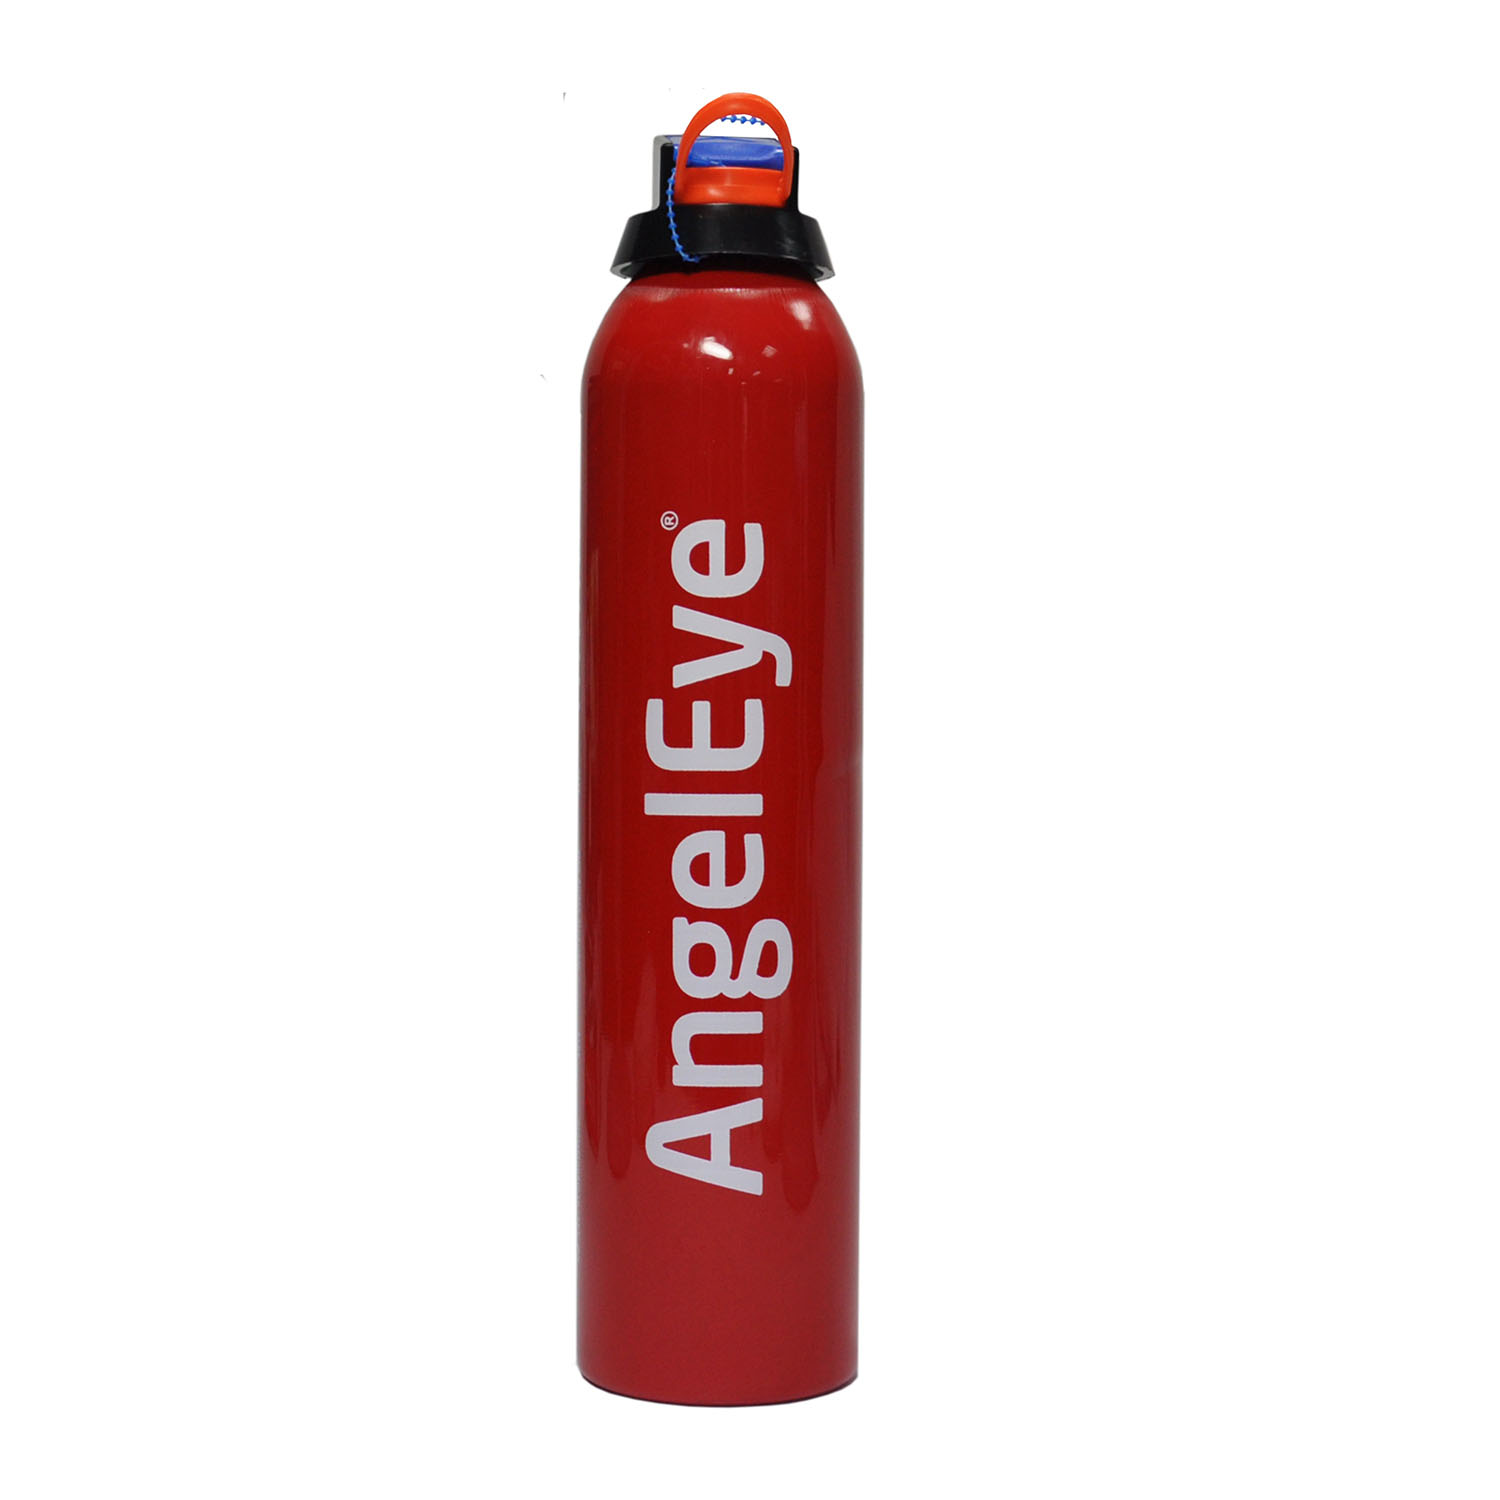 Image of 600ml Fire Extinguisher